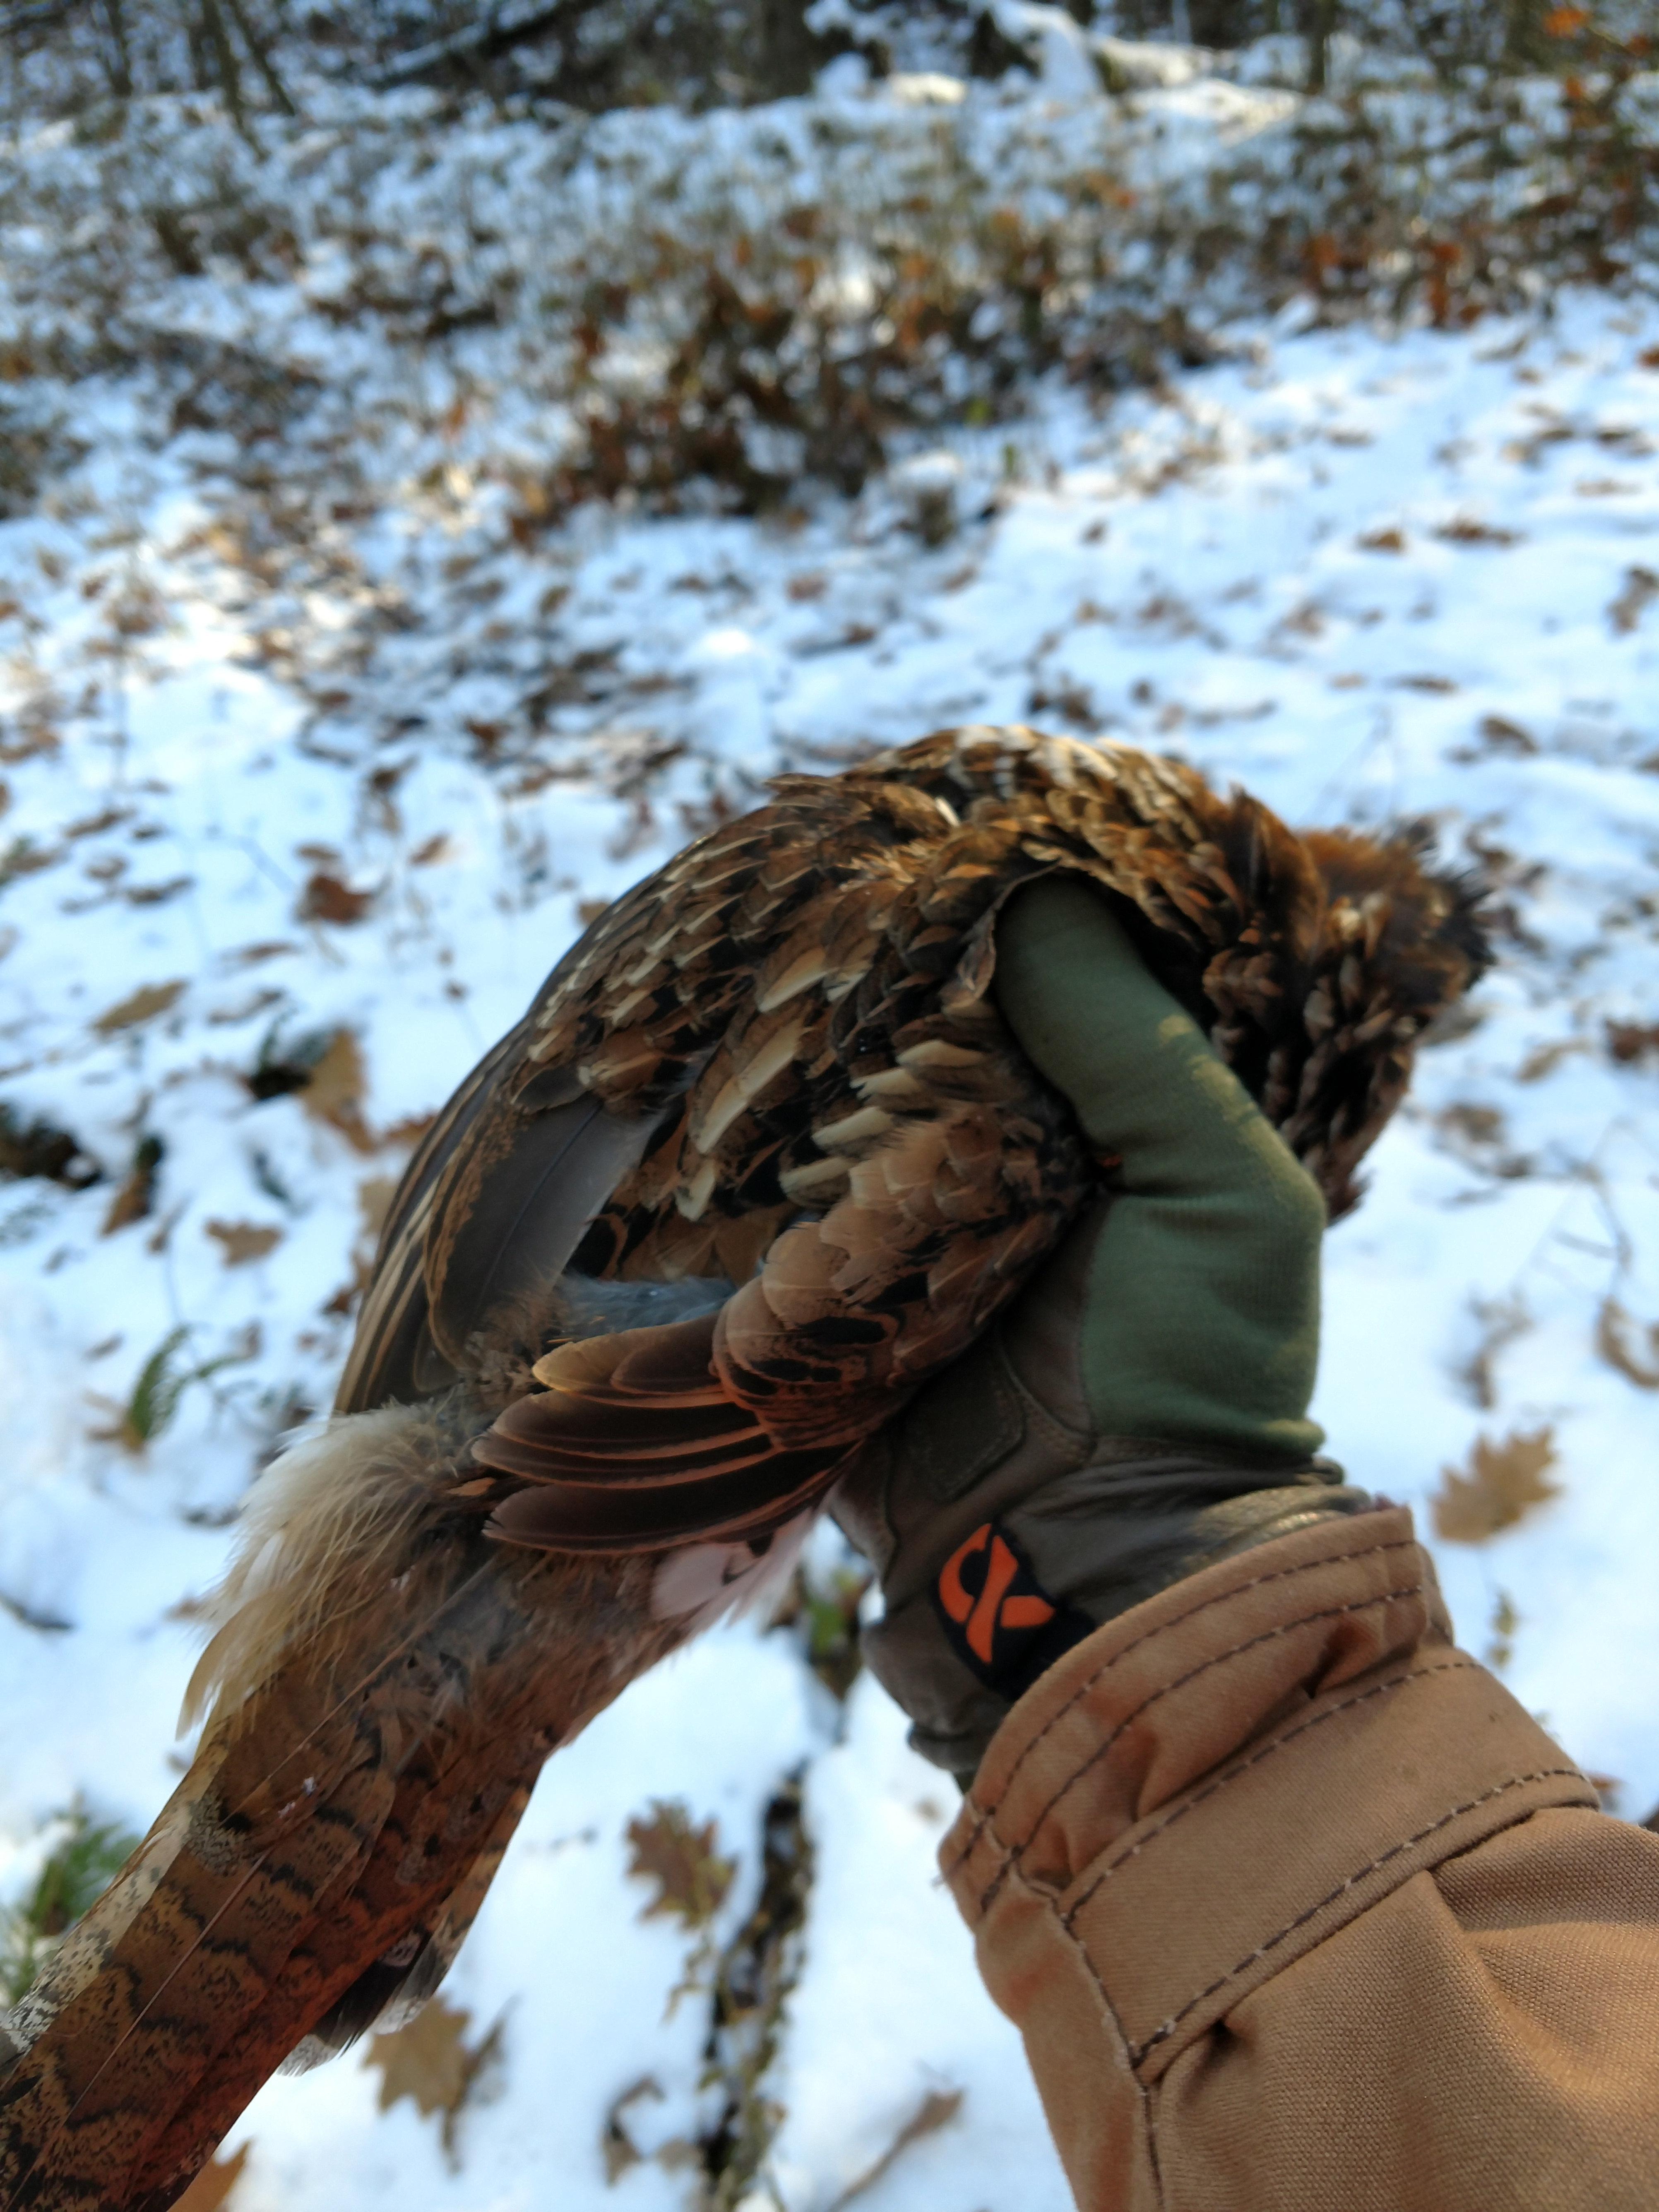 Dan's Briarproof Upland Game Coat in action in the Pennsylvania Grouse Covers.